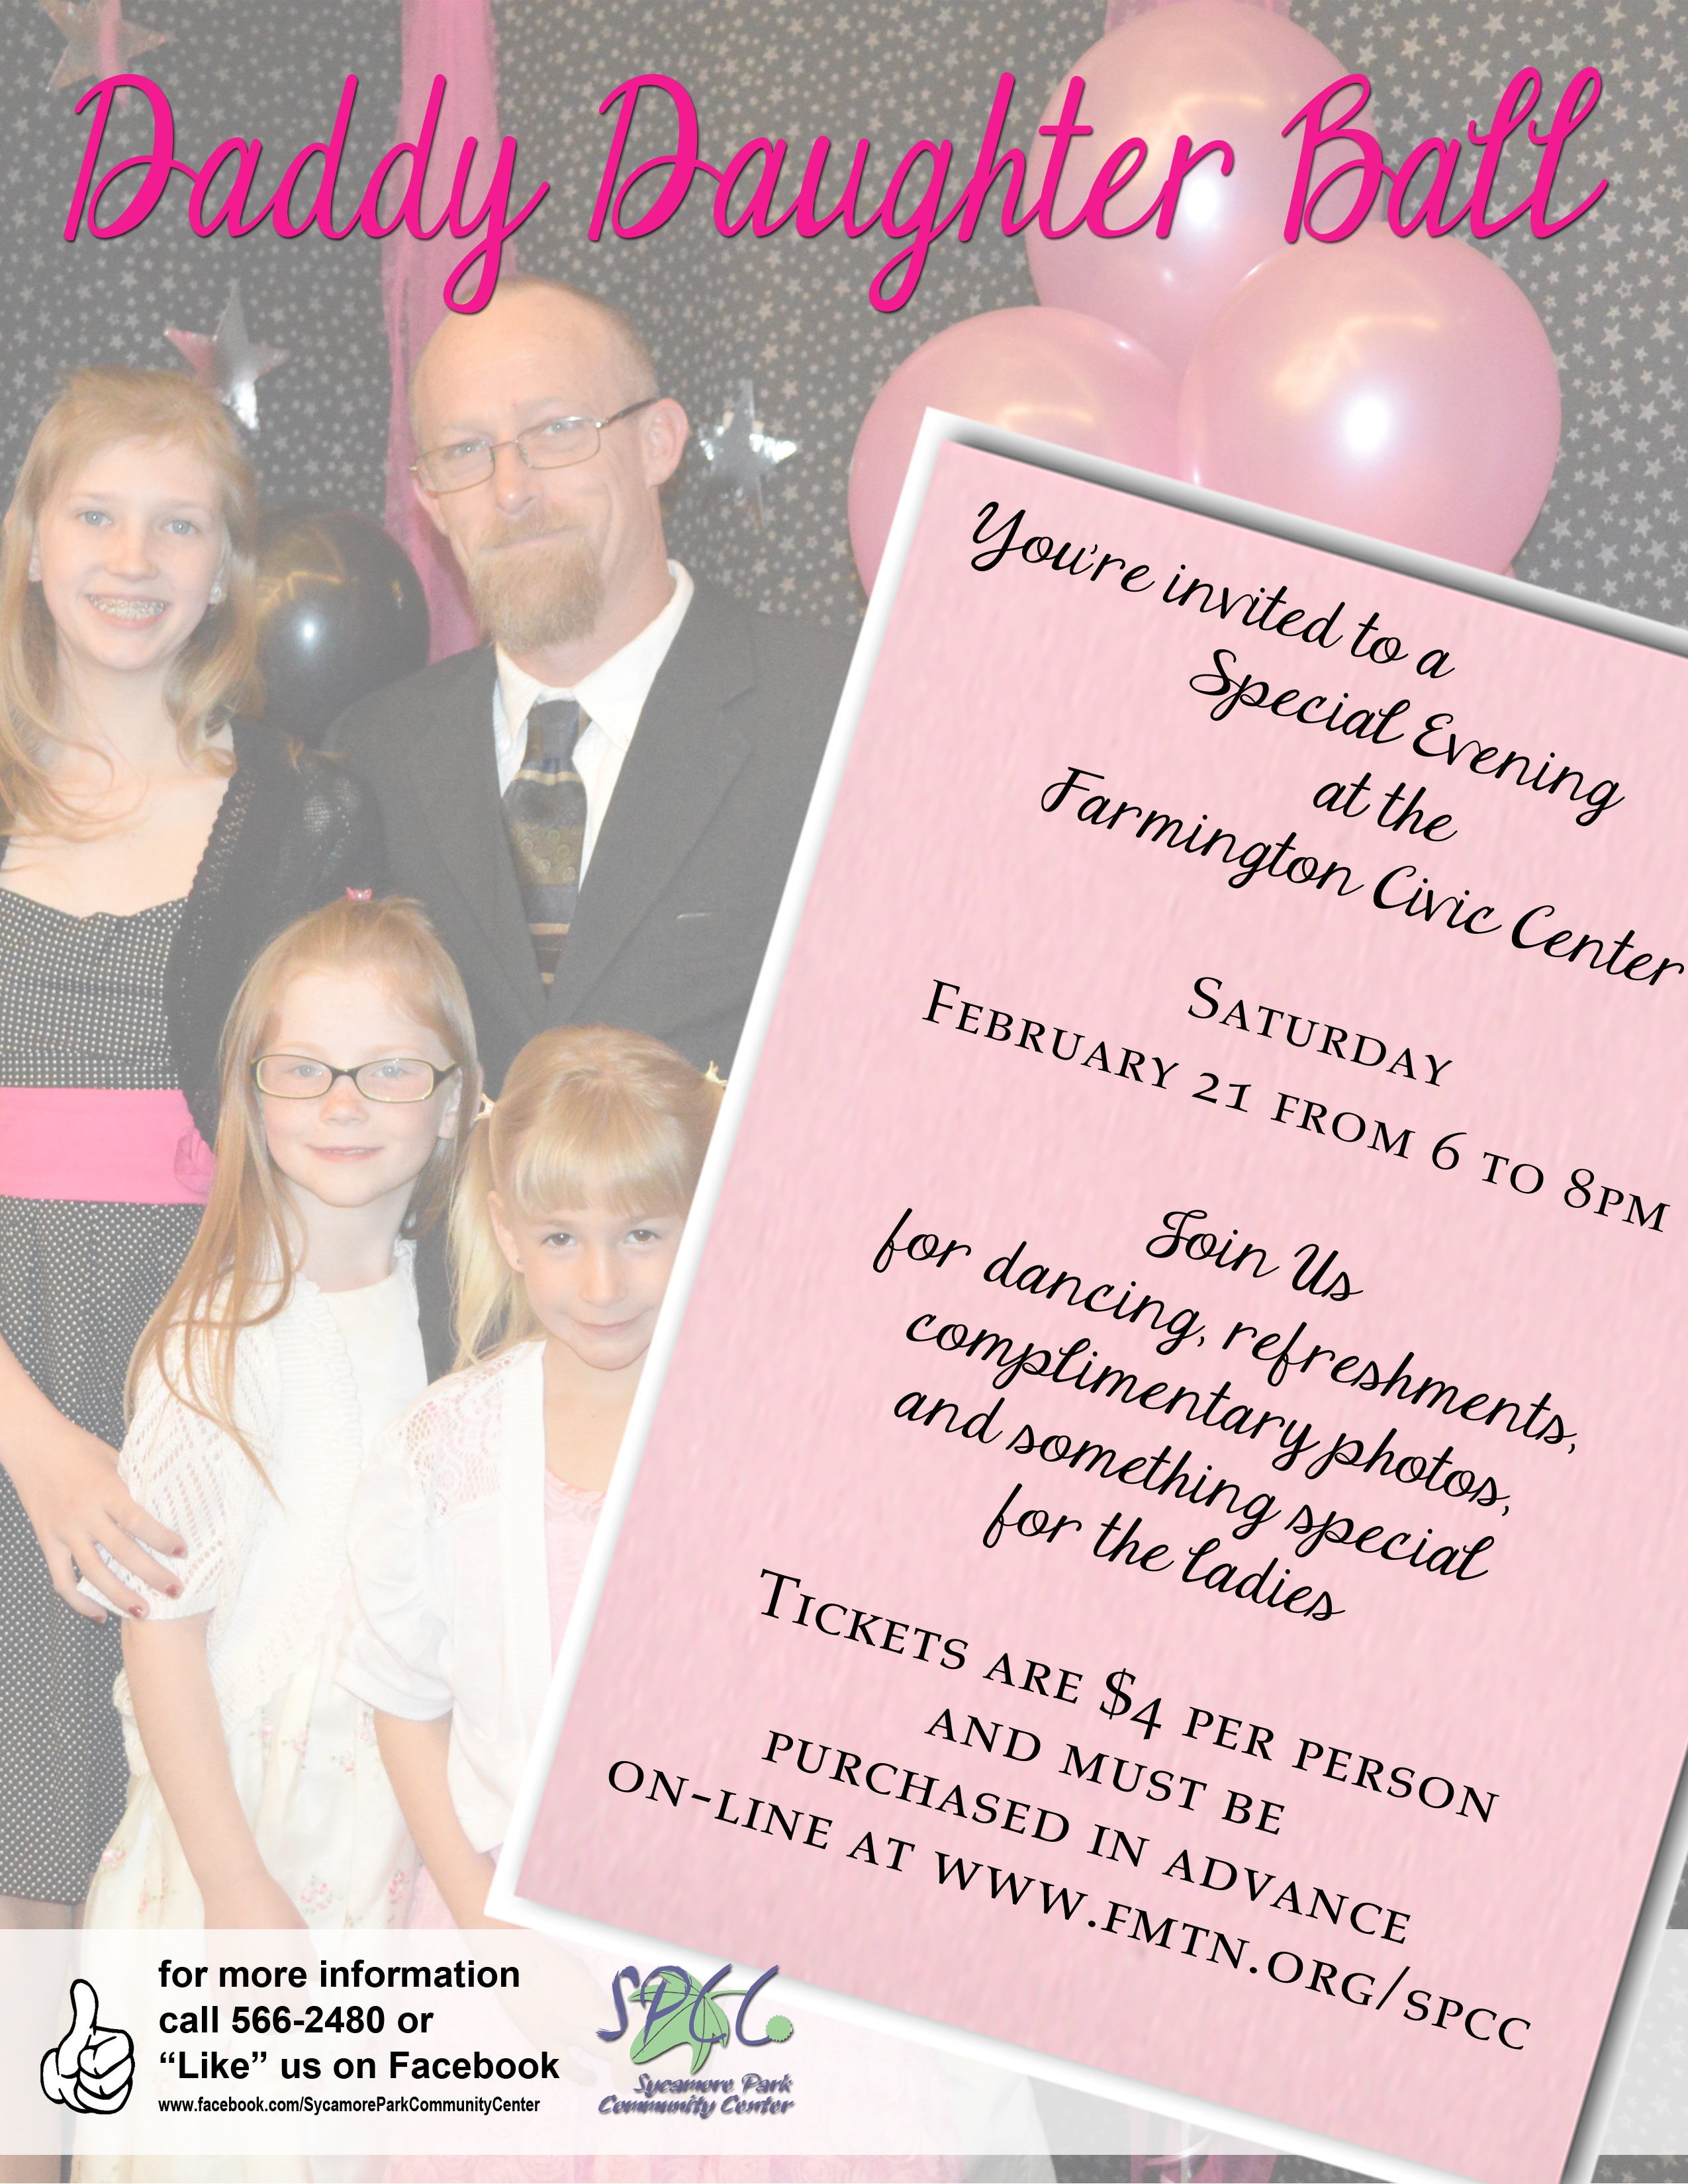 Daddy Daughter Ball Flyer